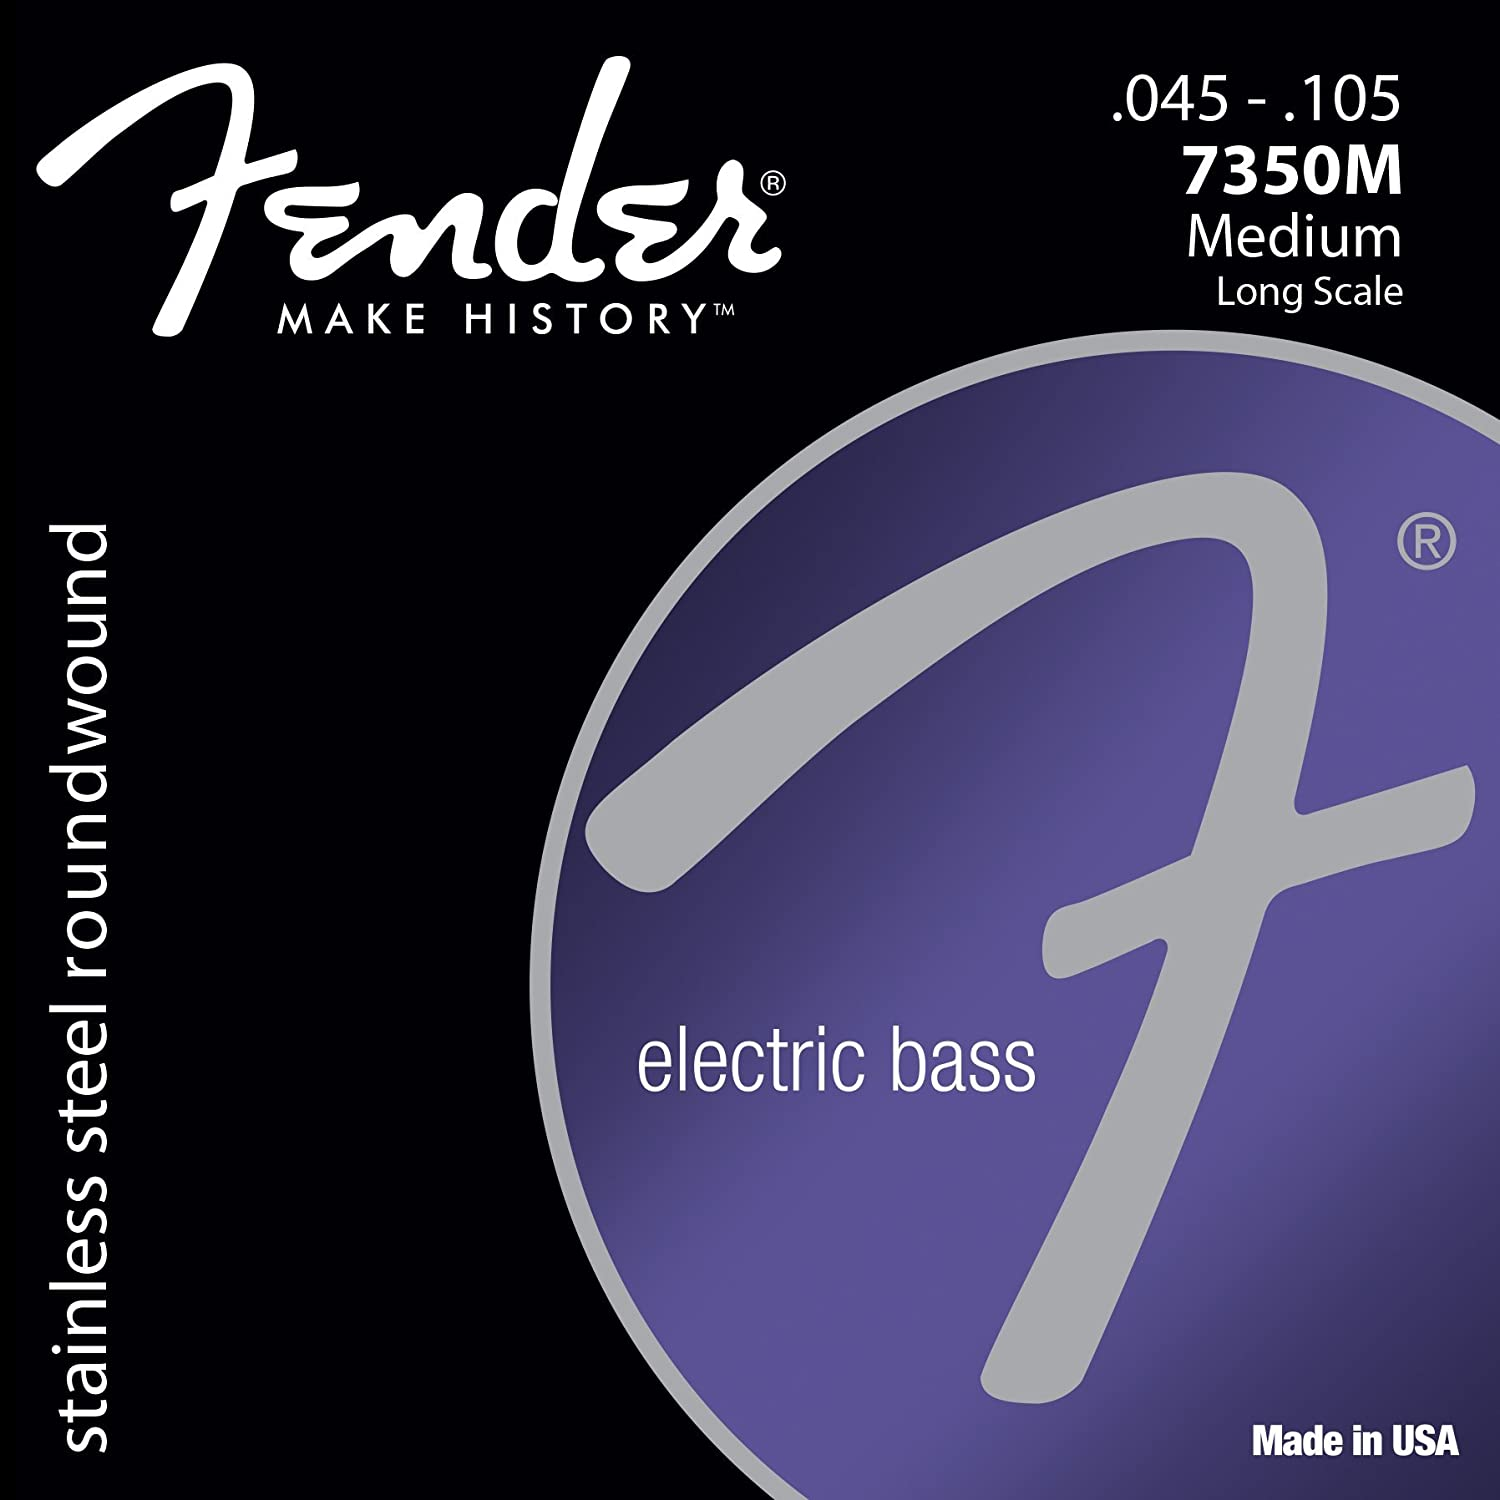 Fender 7250M Nickel Plated Steel Roundwound Long Scale Electric Bass Guitar Strings - Medium 073-7250-406